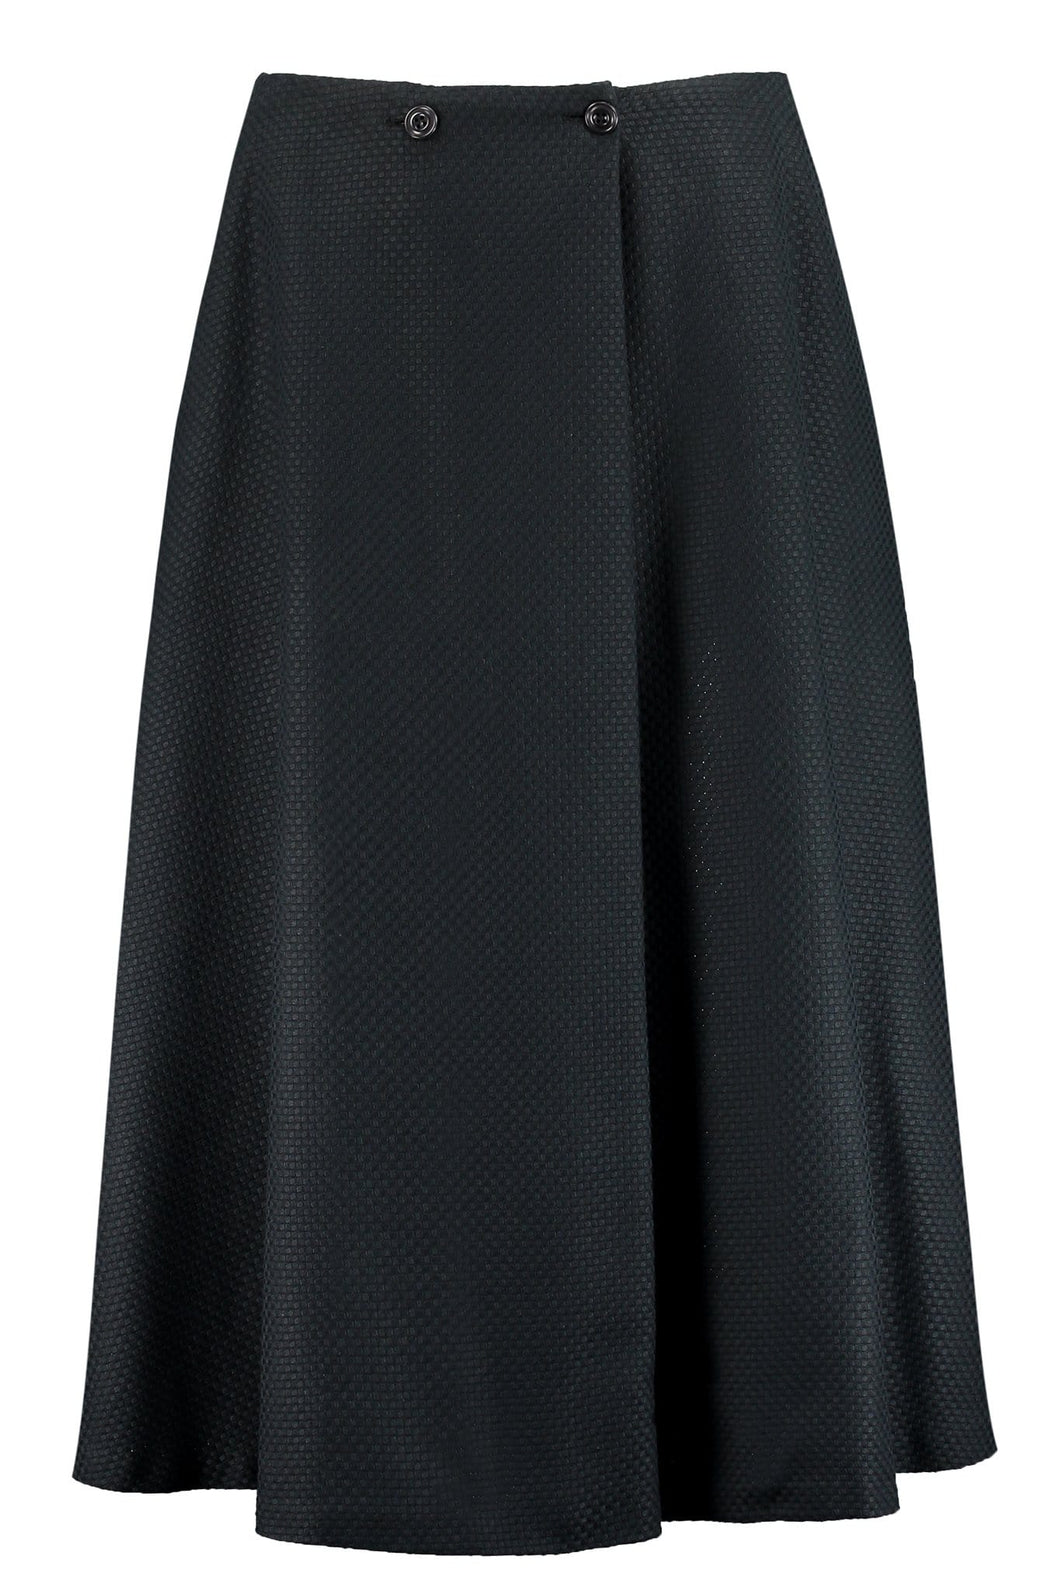 Organic Cotton Flared Midi Skirt - I'mdividual